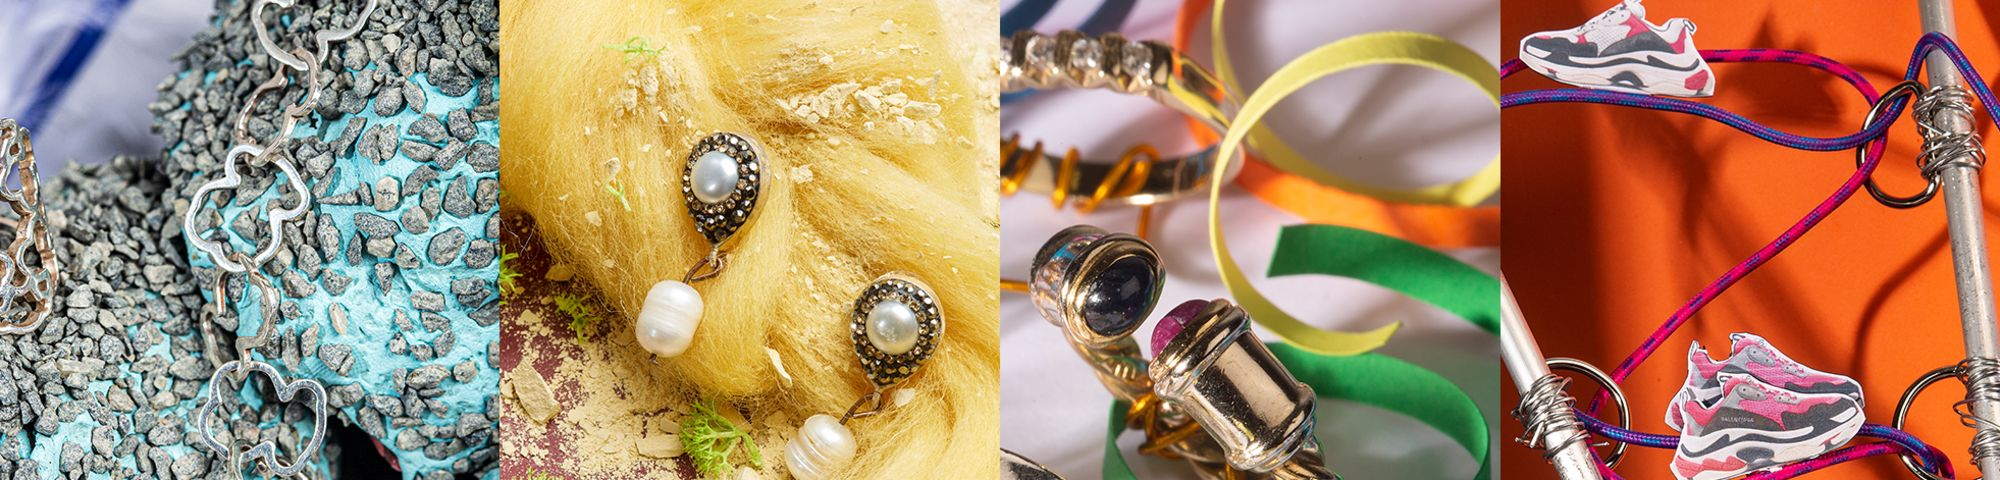 Work by Visual Merchandising - Interiors students, taken by Sarah Manning. 4 photographs (left to right), a chain sitting on blue and grey rocks. Earrings pinned to yellow hair like material. Gold rings among colourful ribbon and photographed pairs of trainers sitting on USB cable.